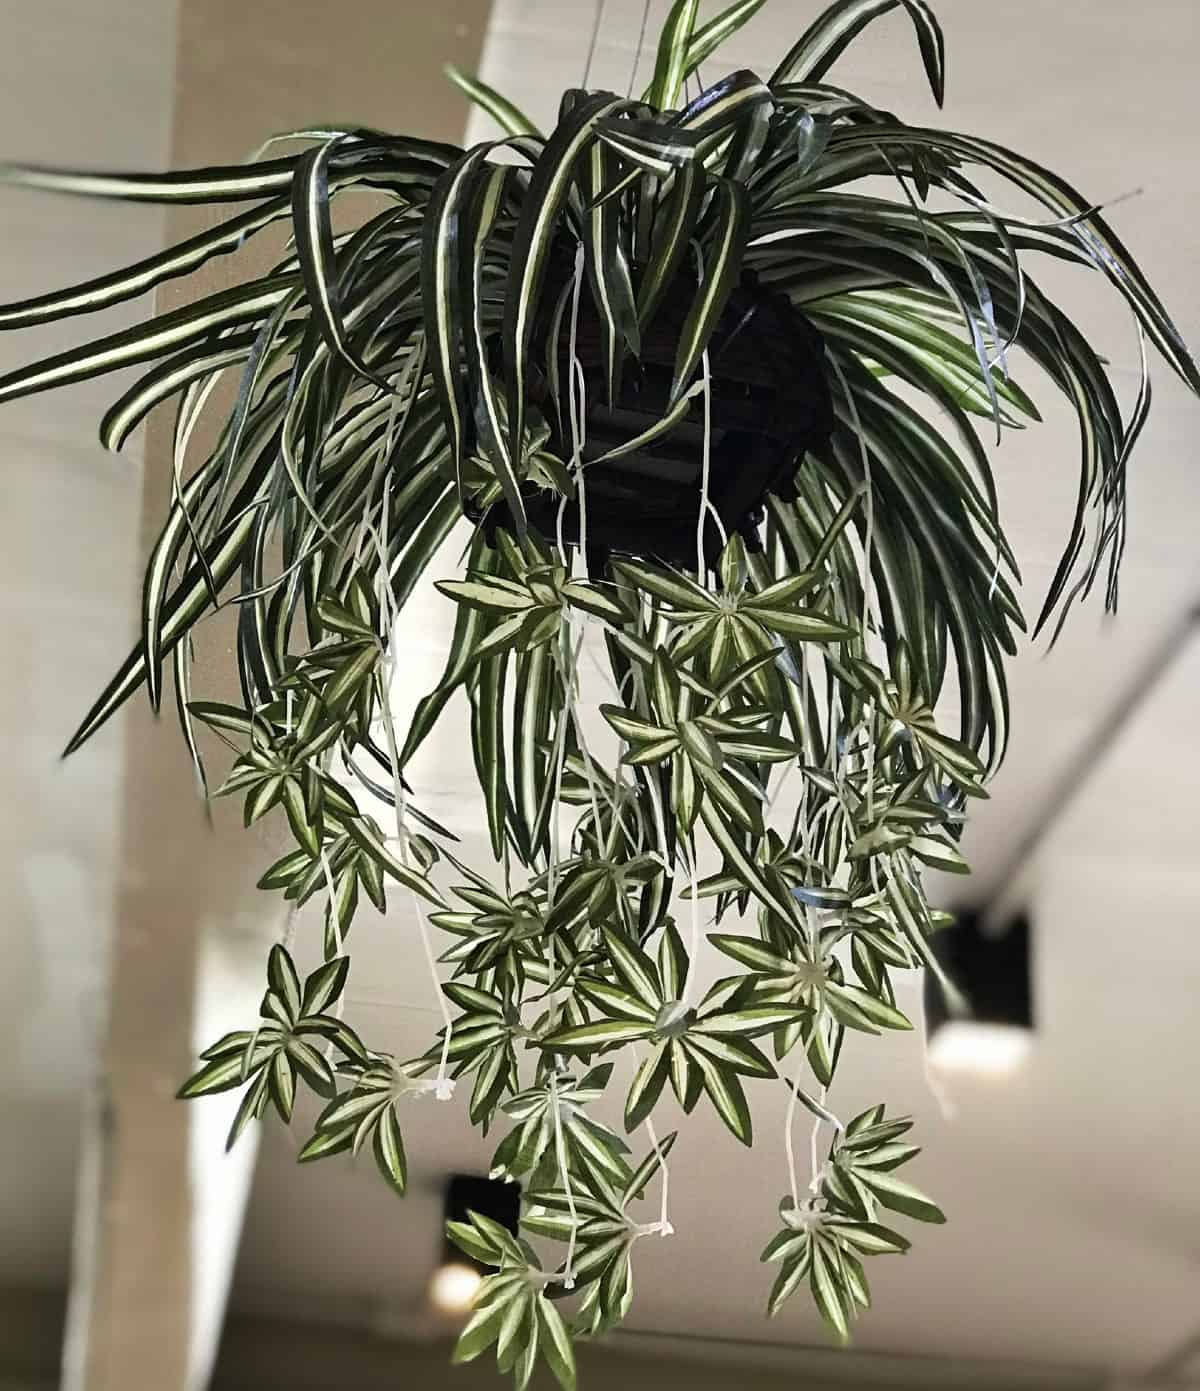 The spider plant is easy to grow from cuttings.